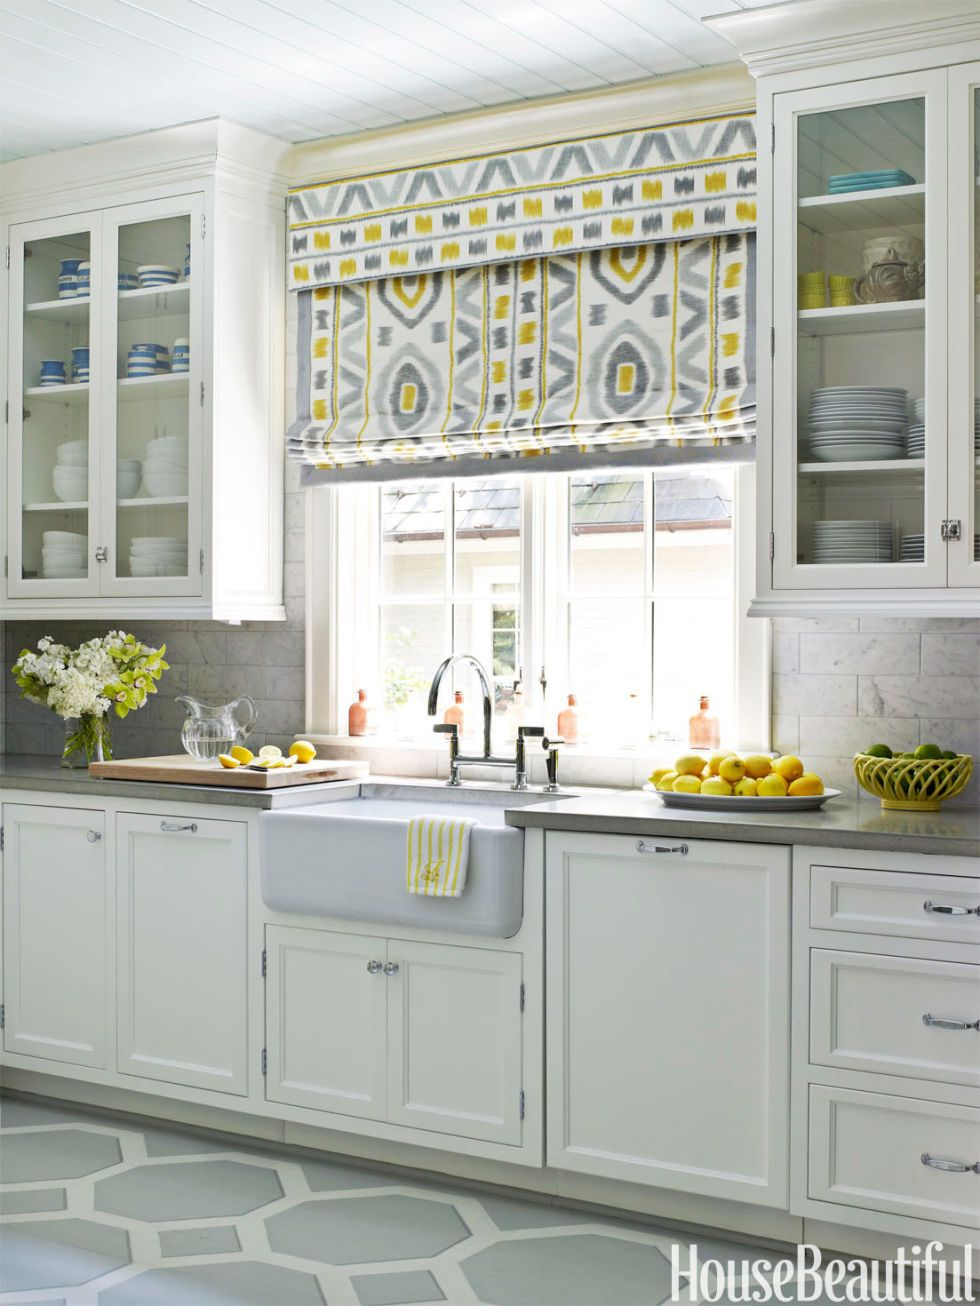 15 Great Design Ideas for Your Kitchen | Kitchen sofa, North ...